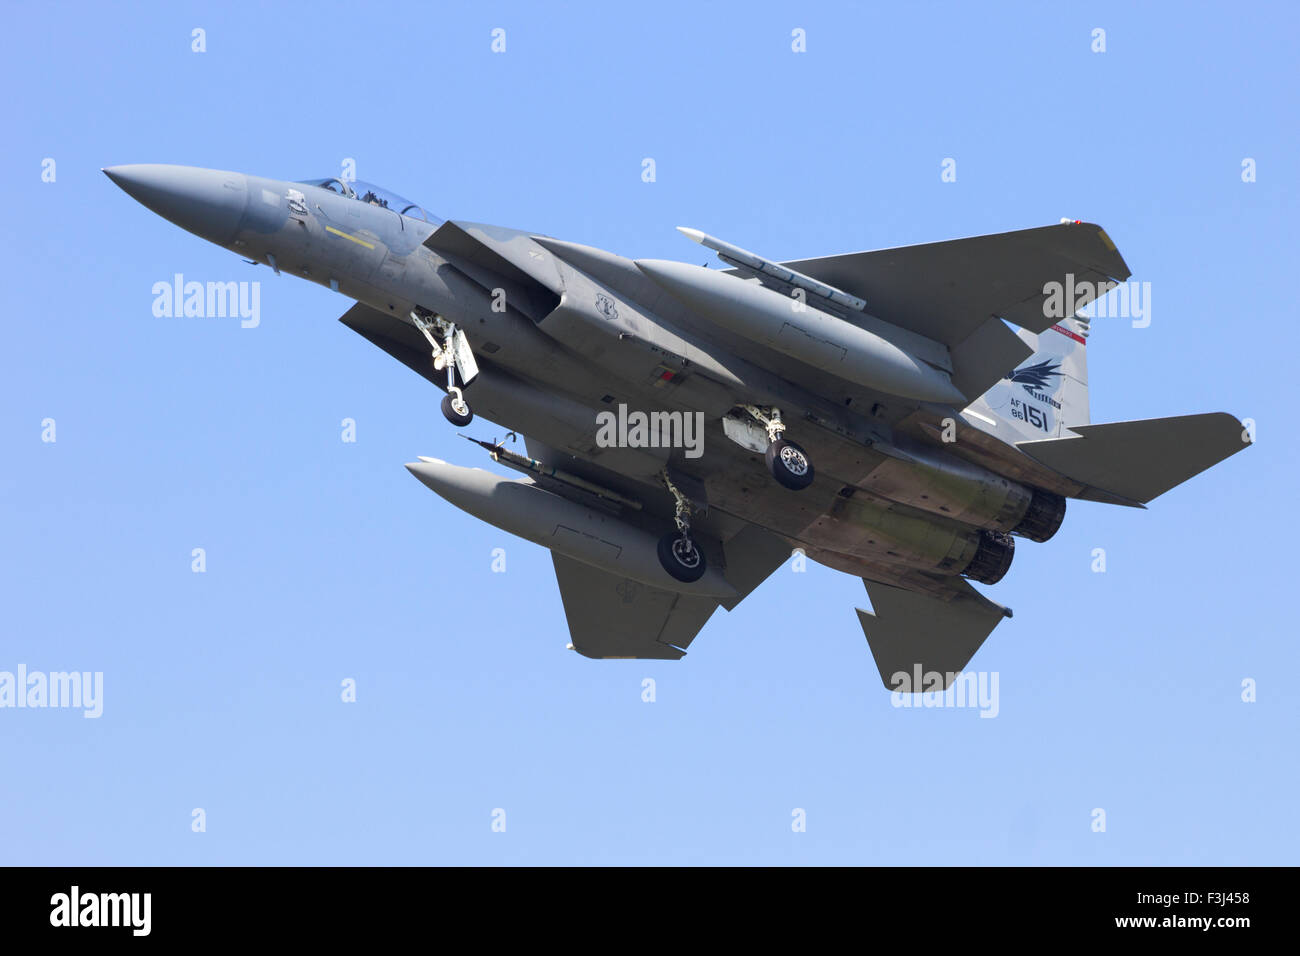 US Air Force F-15 Eagle landing - Stock Image